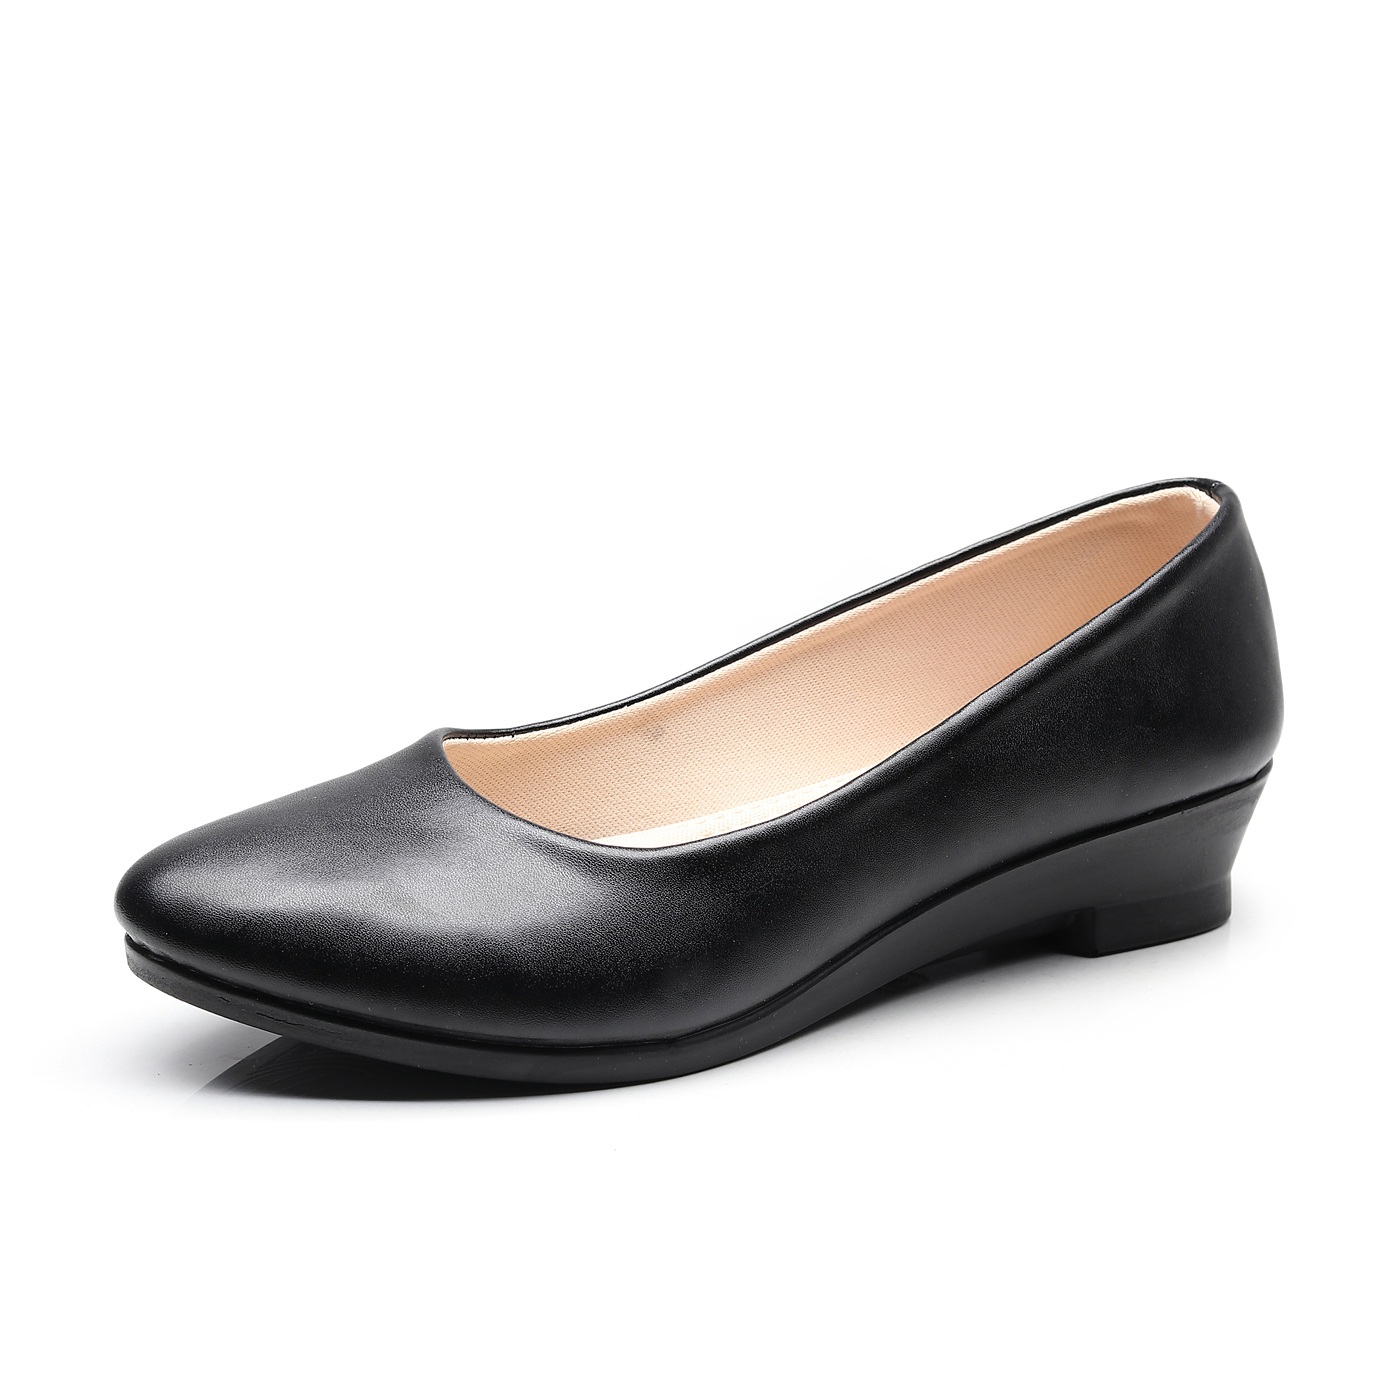 Women Ballet Shoes Black Women Wedges Casual PU Leather Shoes Office Work Boat Shoes Cloth Sweet Loafers Womens Classics Shoes